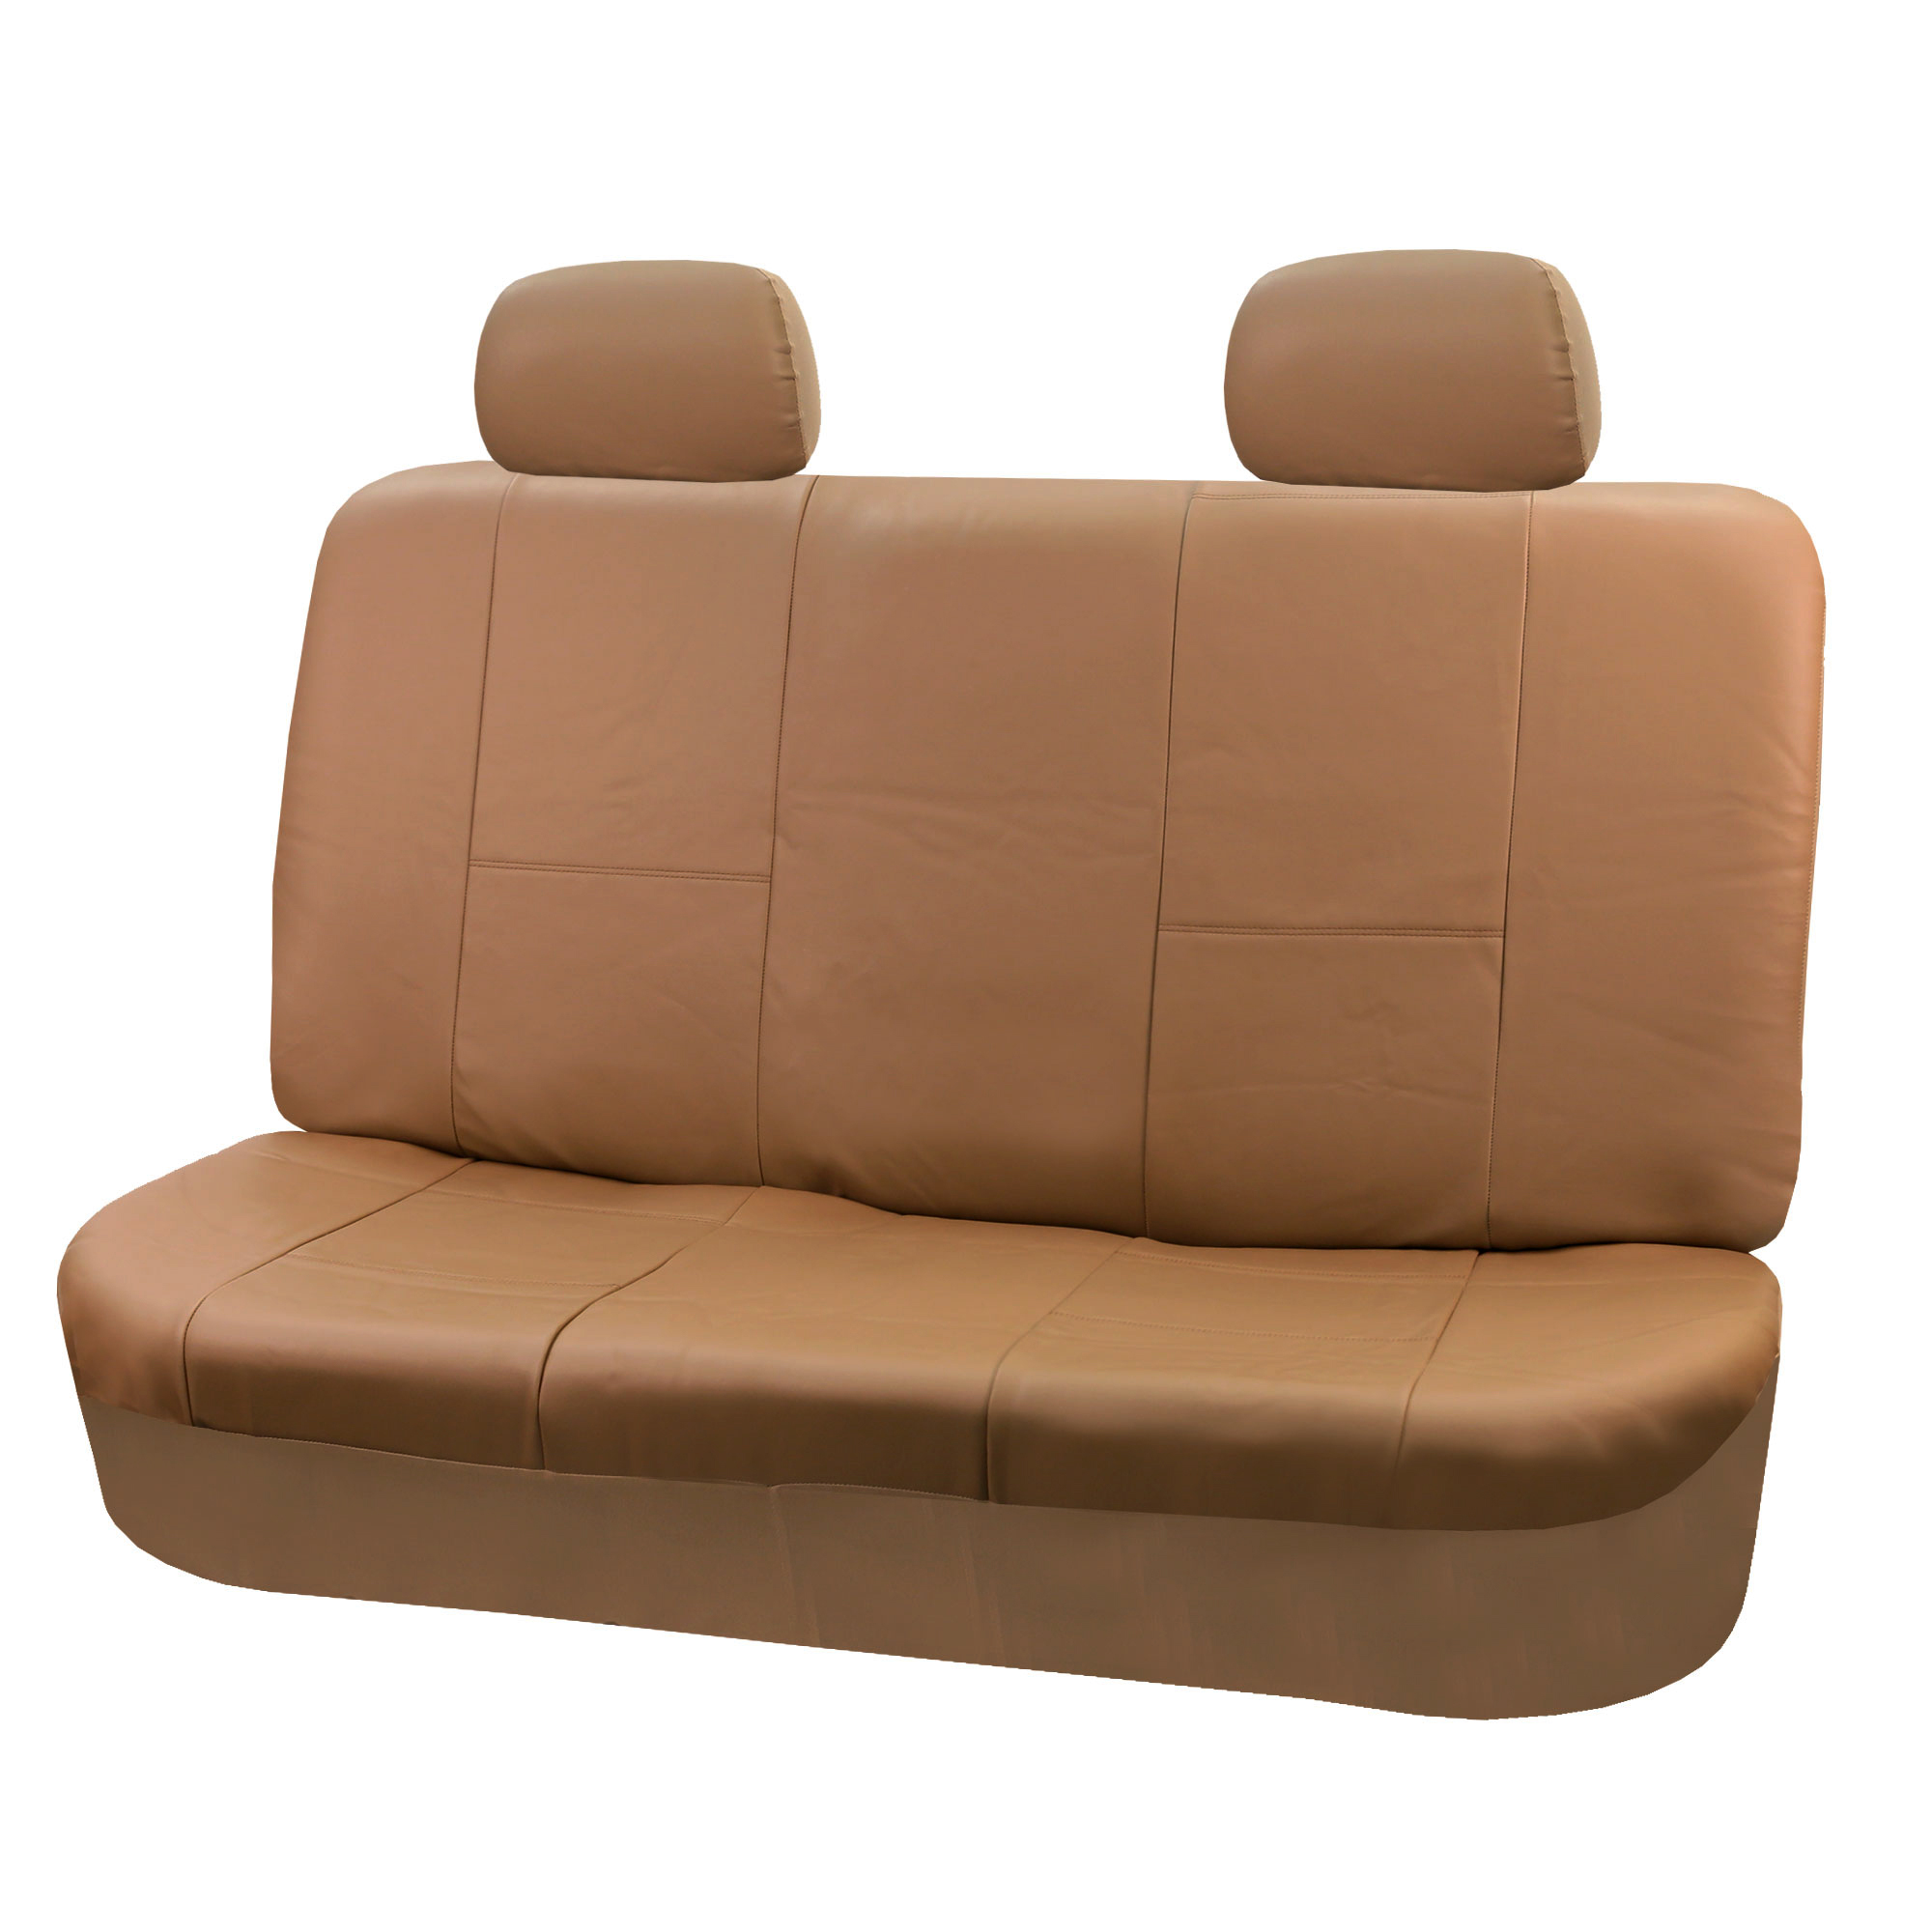 faux leather gripper chair cushions covers for rent winnipeg sport line car seat cover set tan free gift